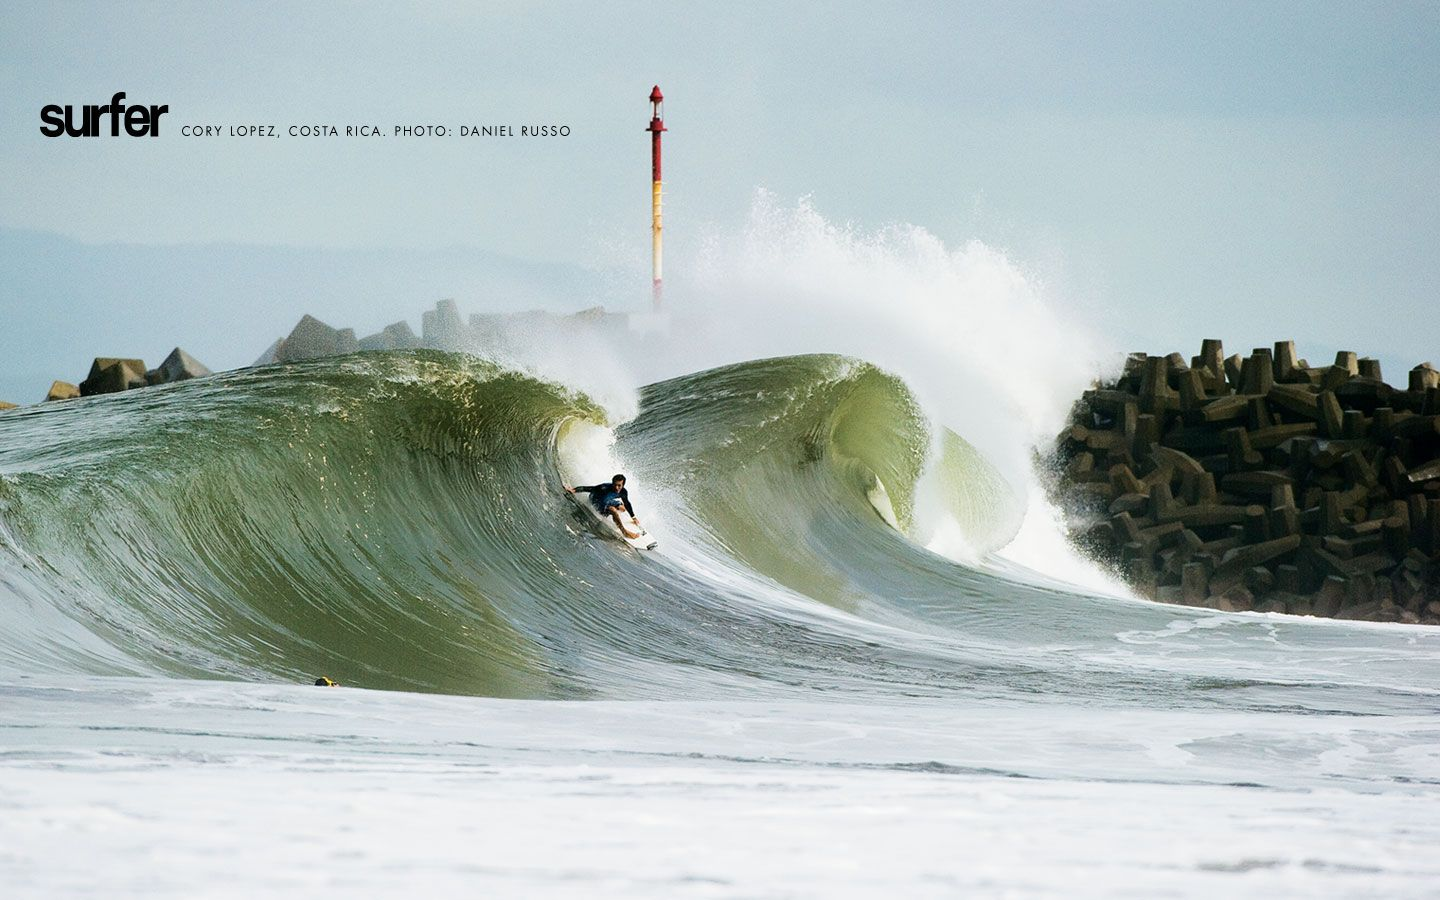 Surfer Magazine Surf News Fantasy Surfer Photos Video And Forecasting Surf Poster Surfing Surfing Waves